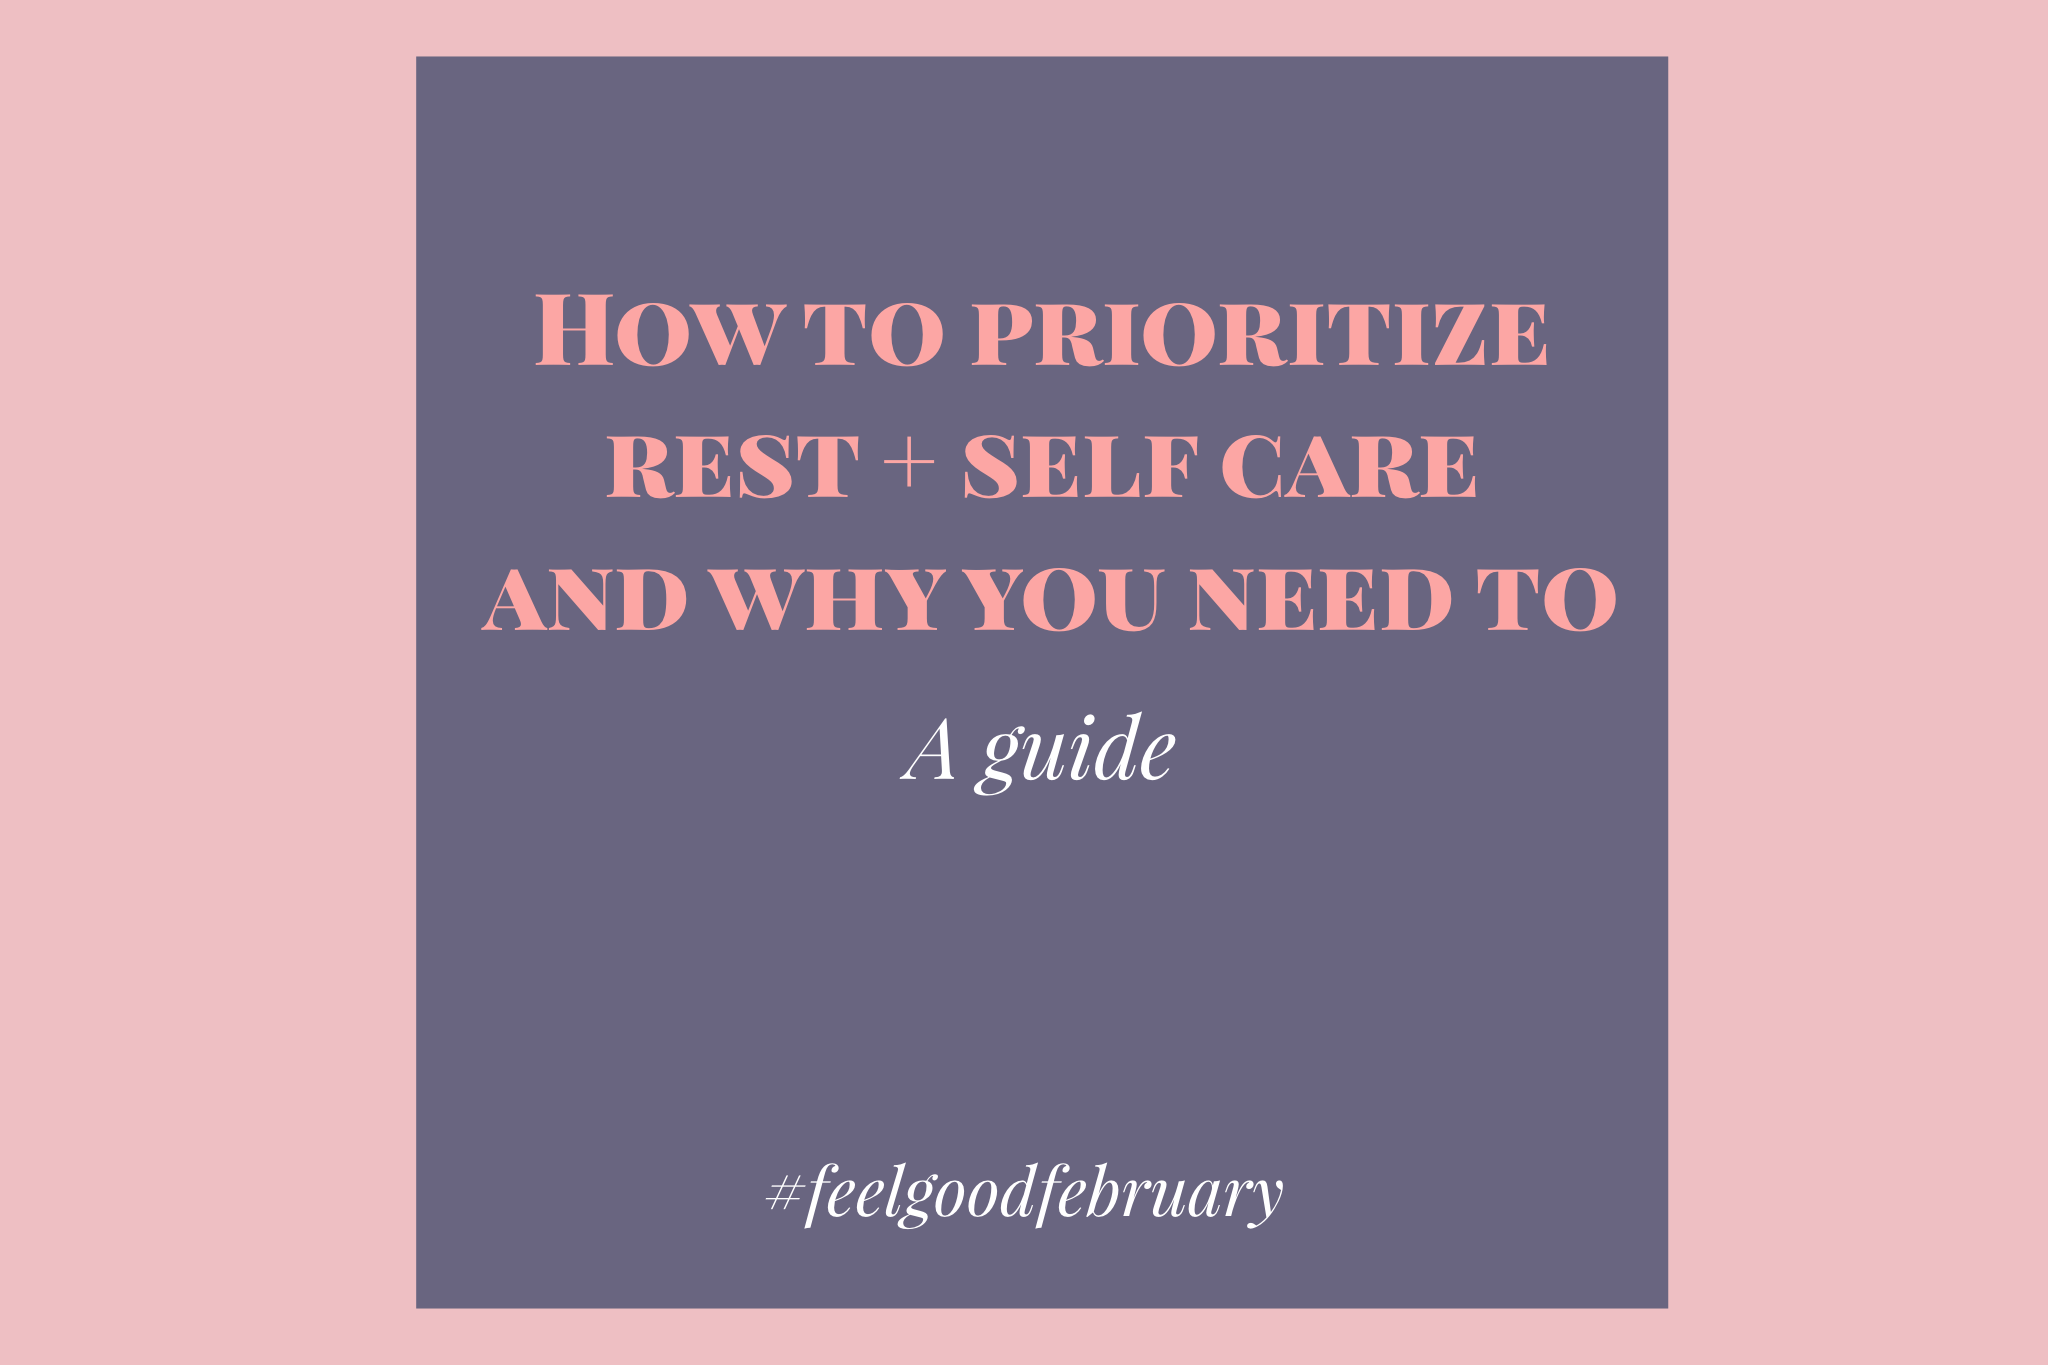 how to prioritize rest and self care and why you need to a guide